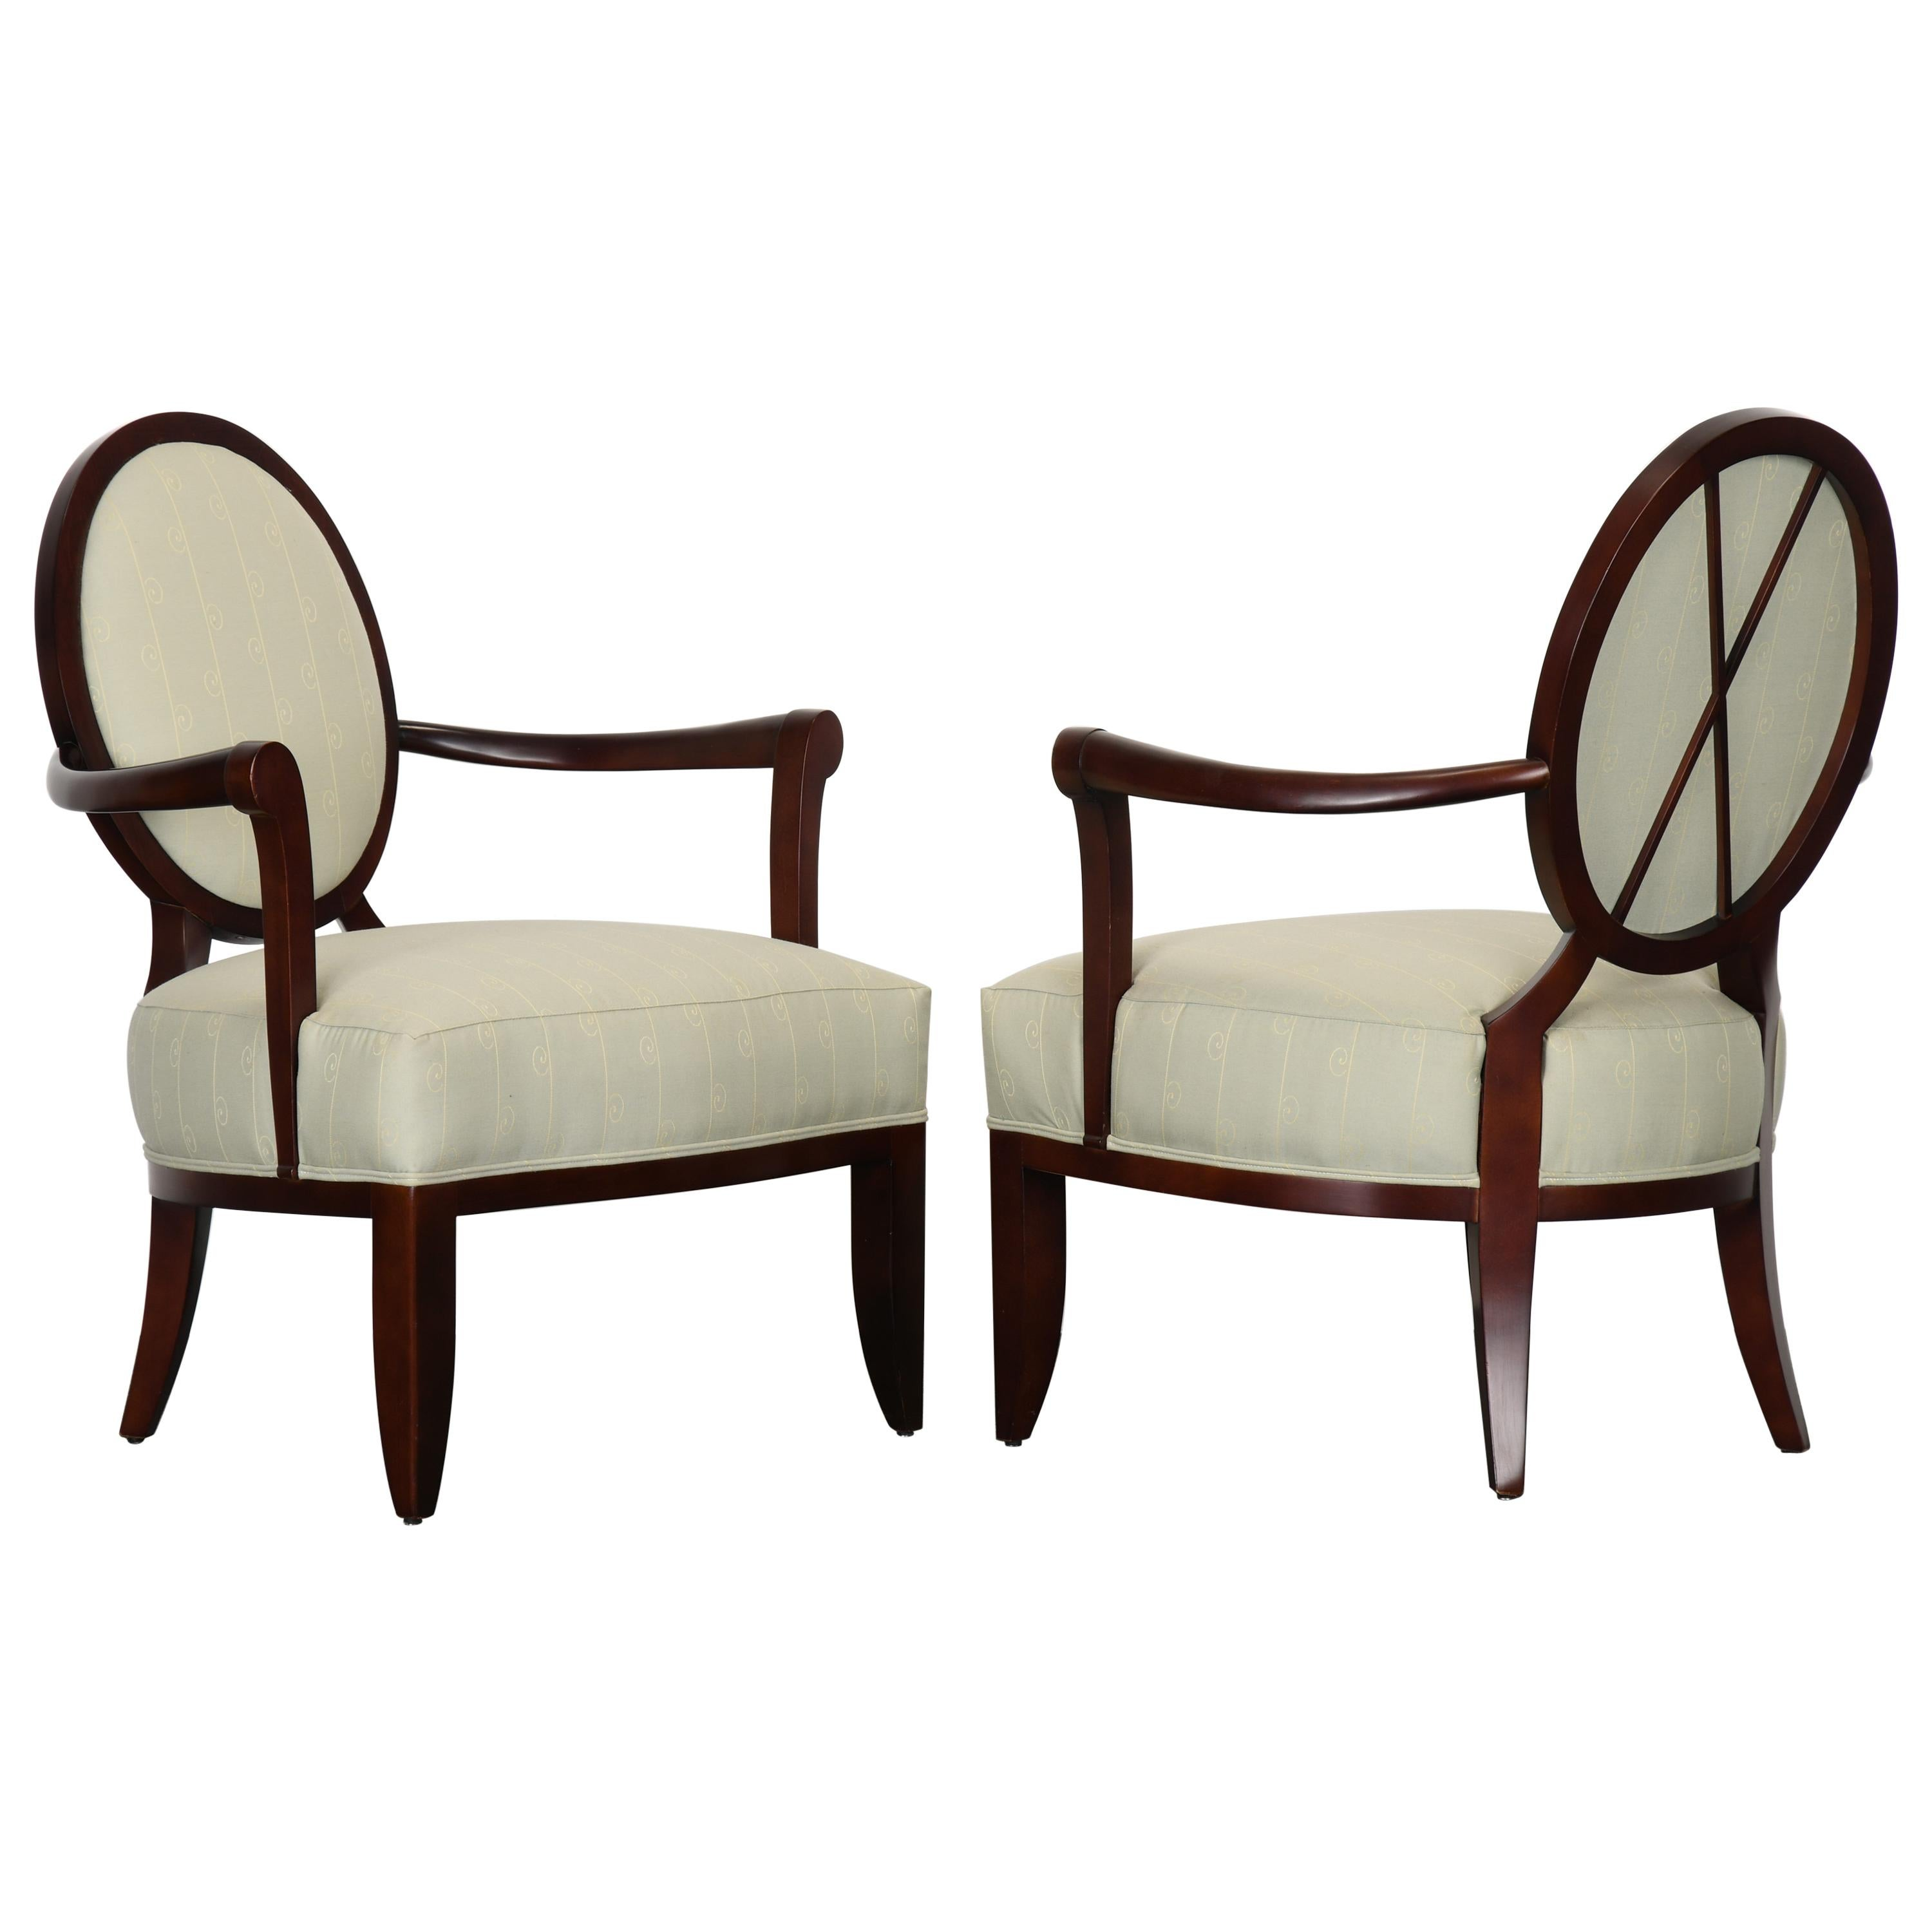 Pair of Barbara Barry Oval X-Back Armchairs for Baker Furniture, 1990s